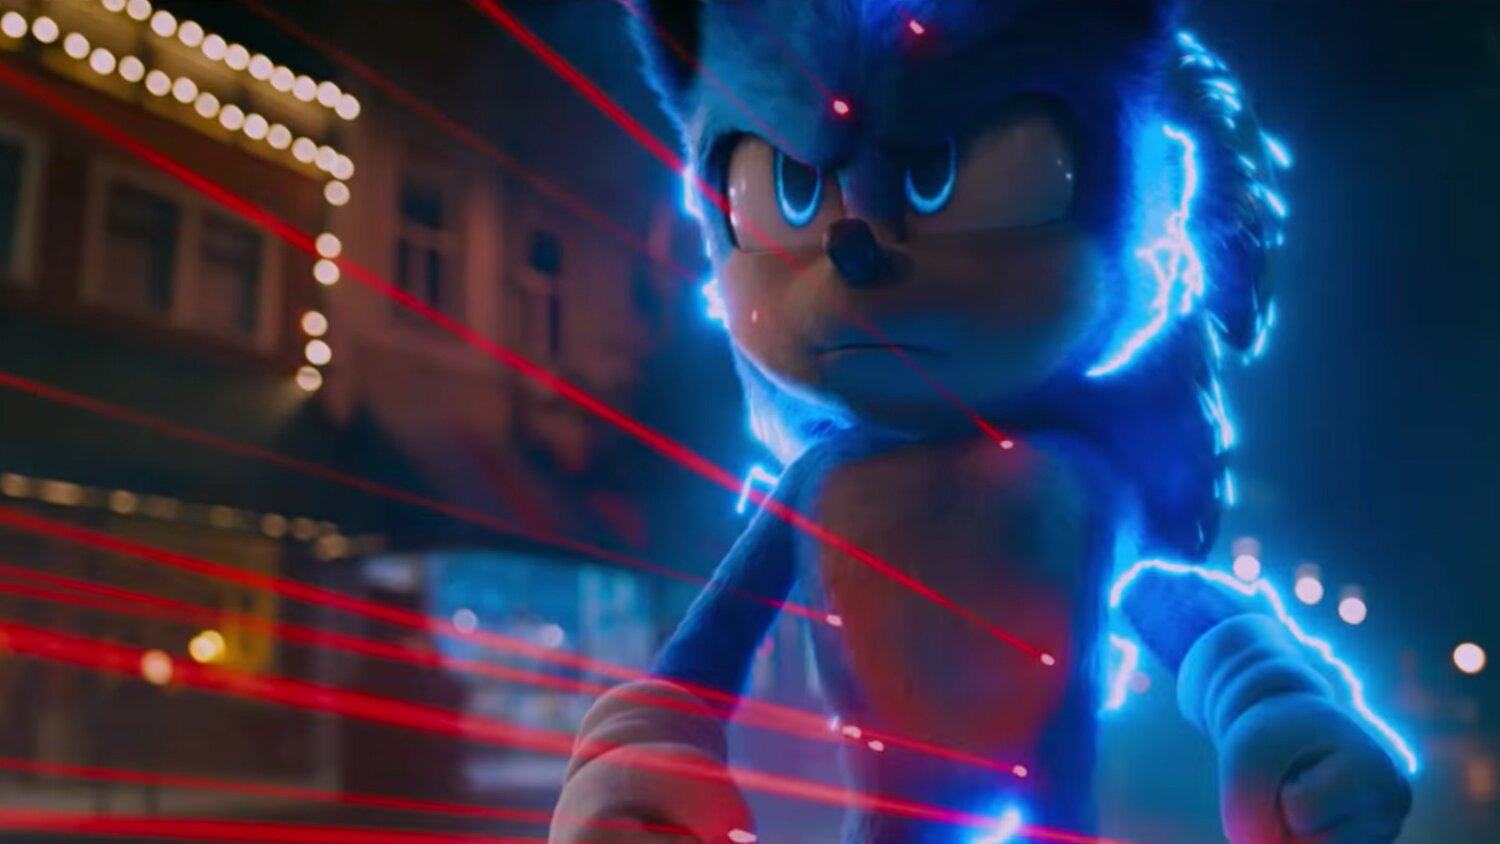 sonic the hedgehog movie wallpaper